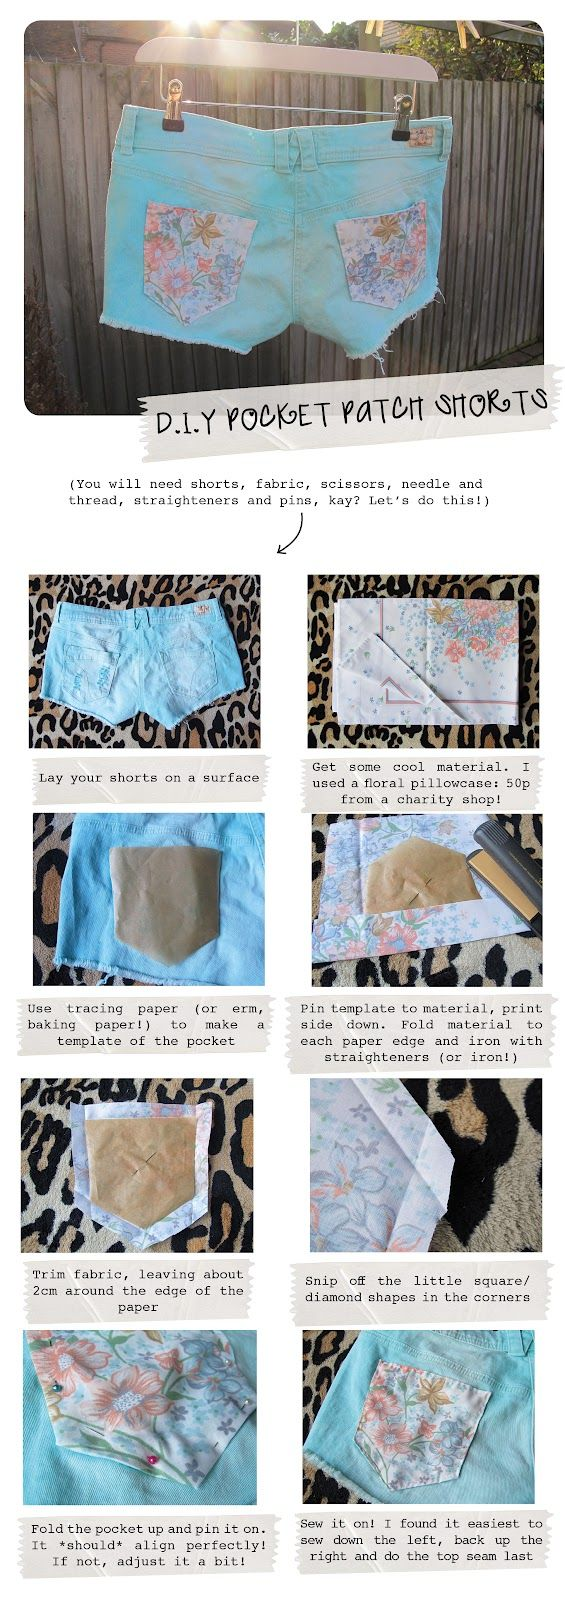 pocket patch shorts